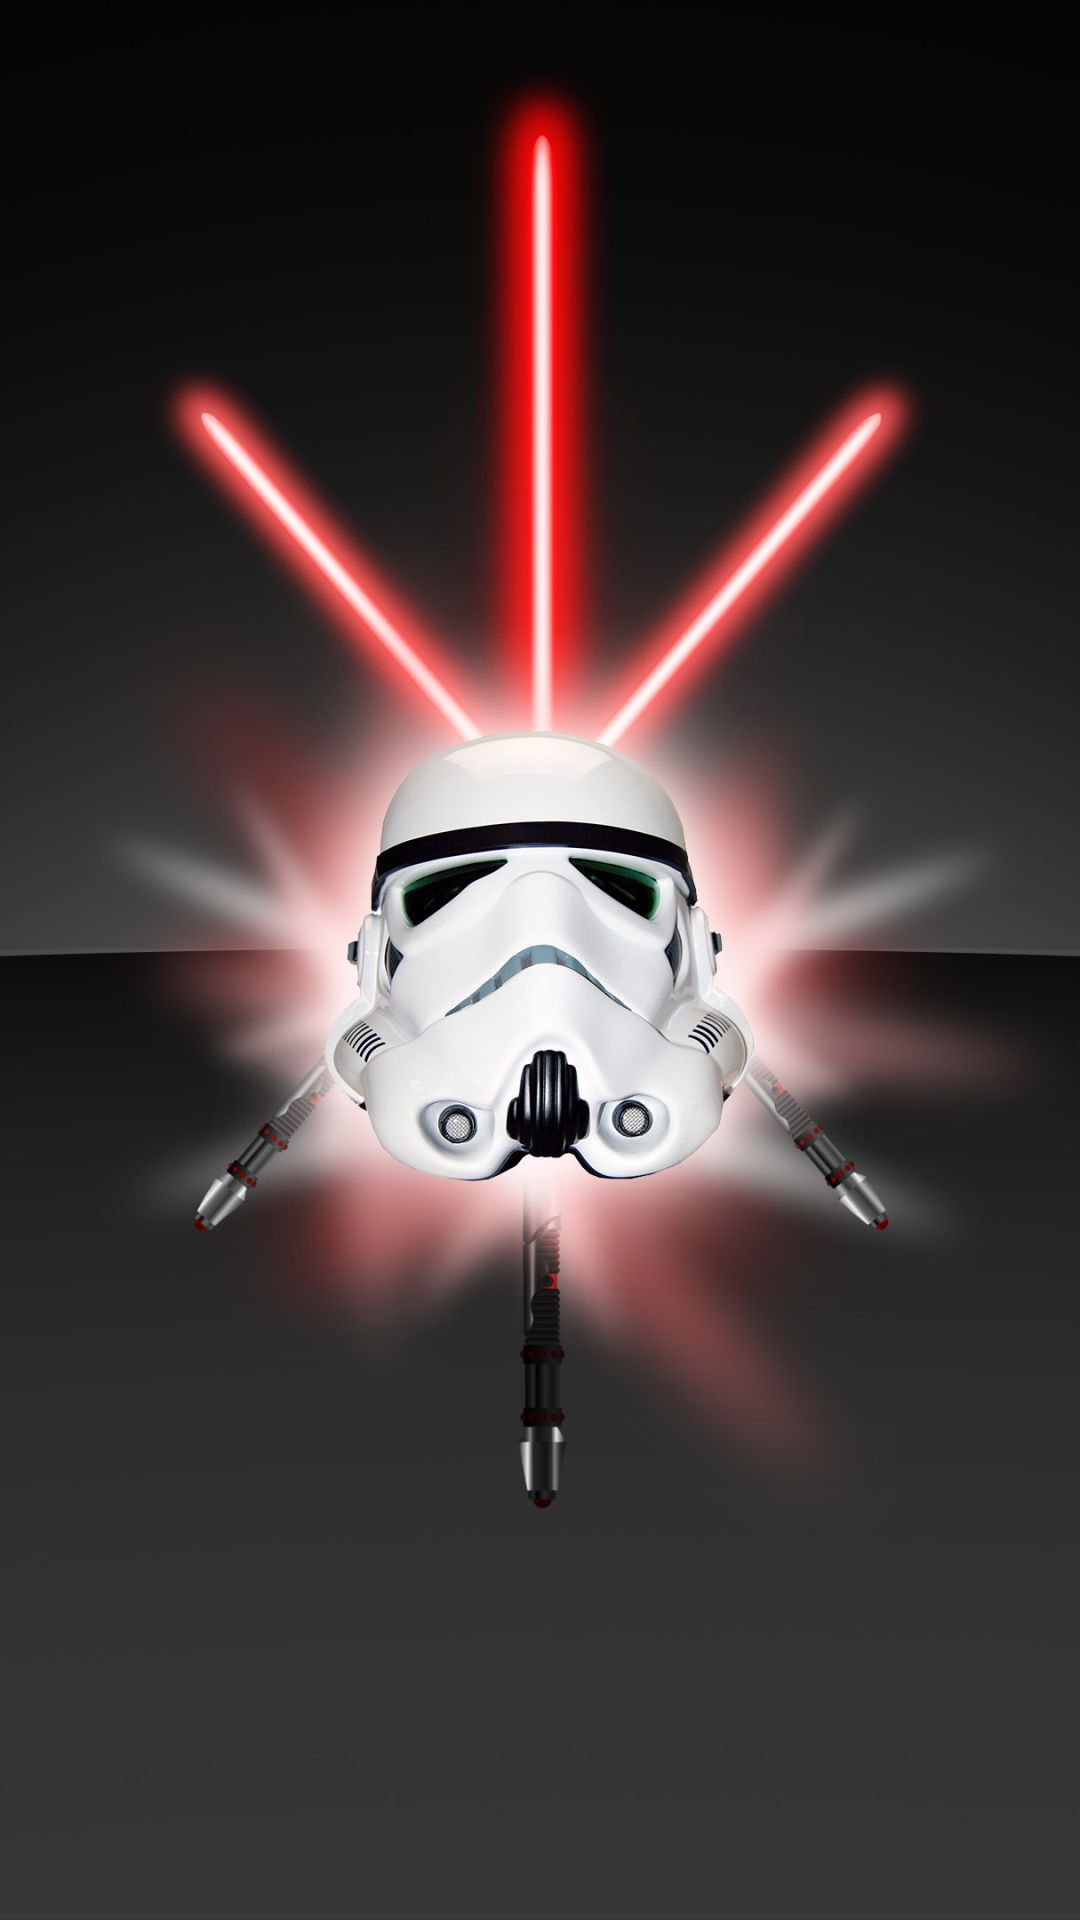 Wallpaper For Iphone X Star Wars